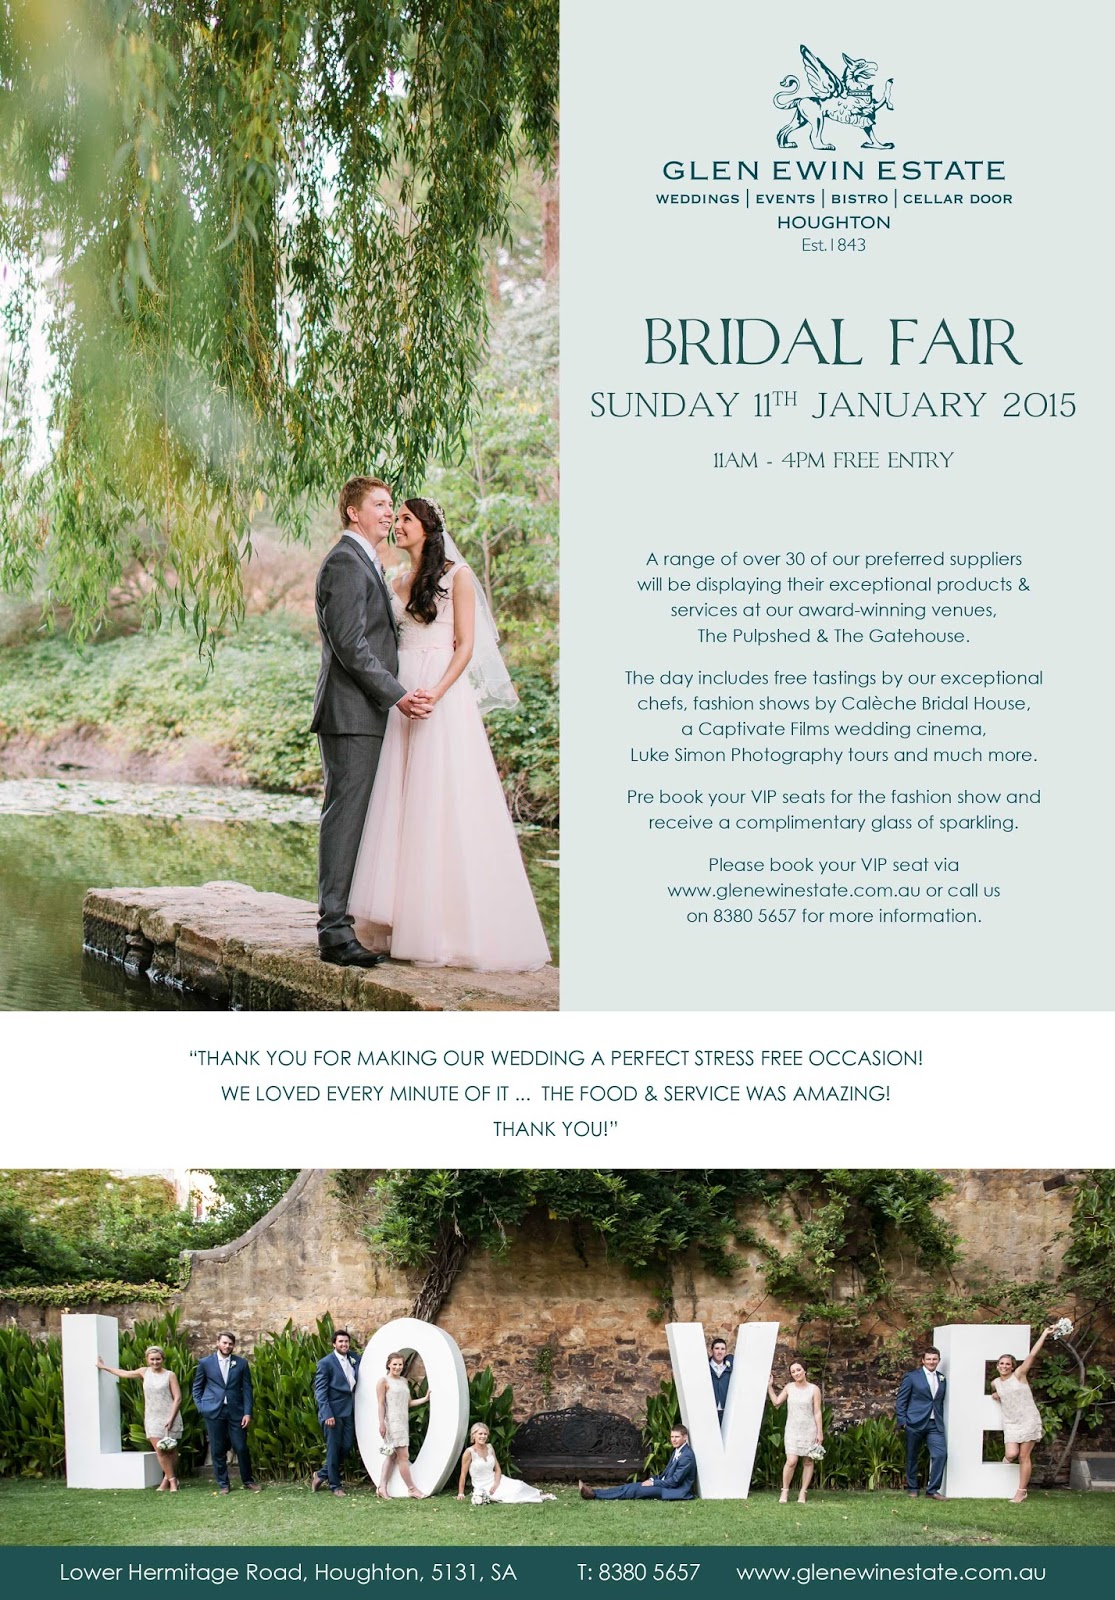 adelaide wedding fair glen ewin estate sail and swan wedding invitations